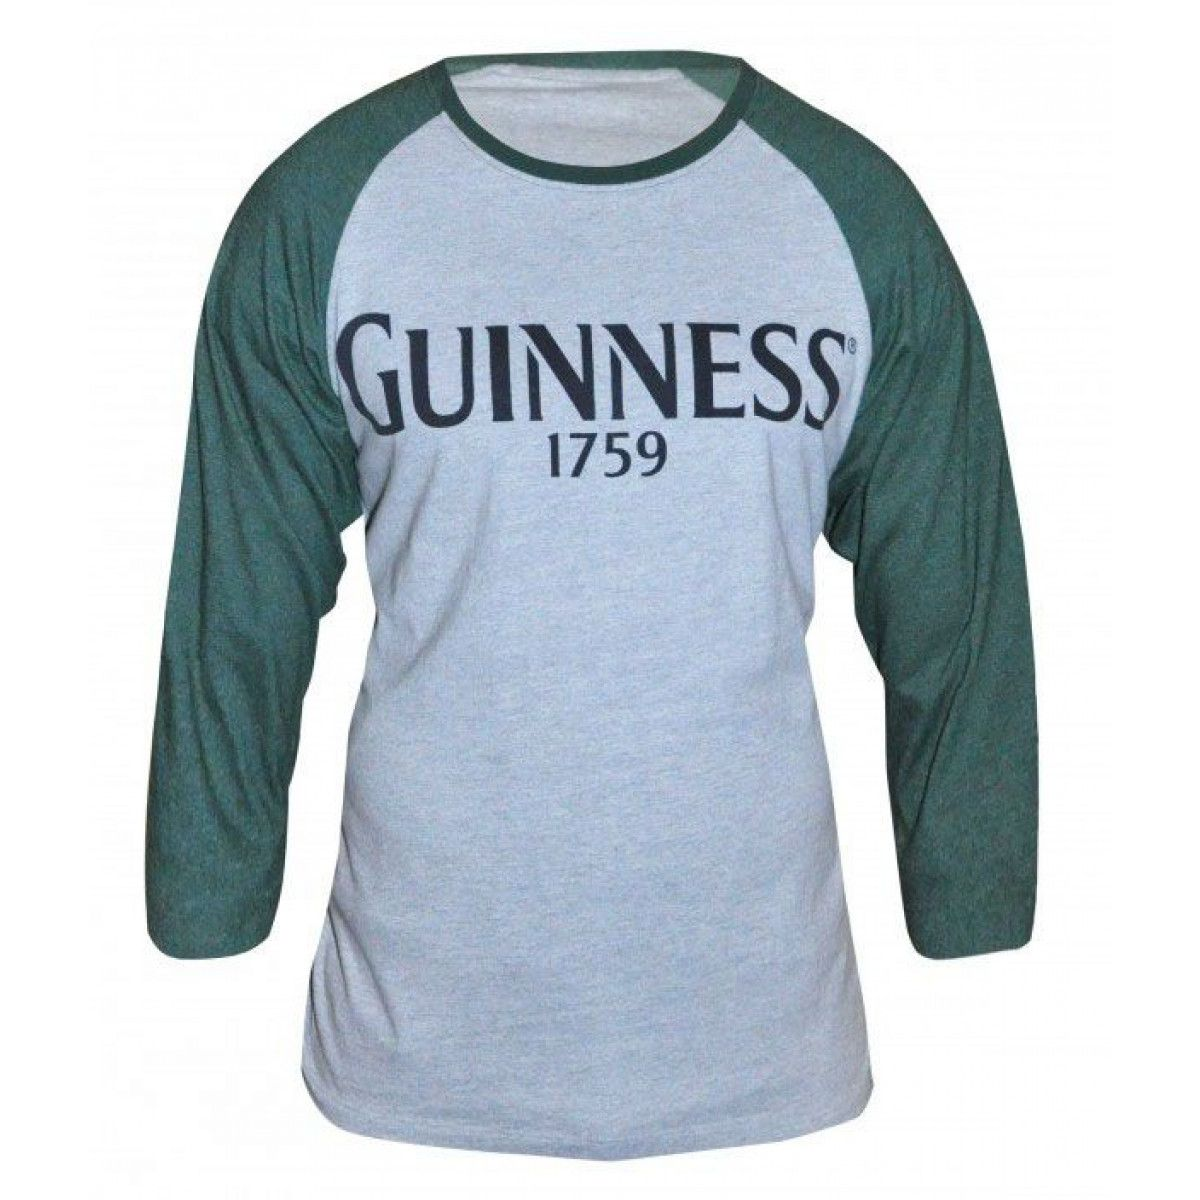 Guinness Baseball TShirt Shirts, Tees, Long sleeve tees